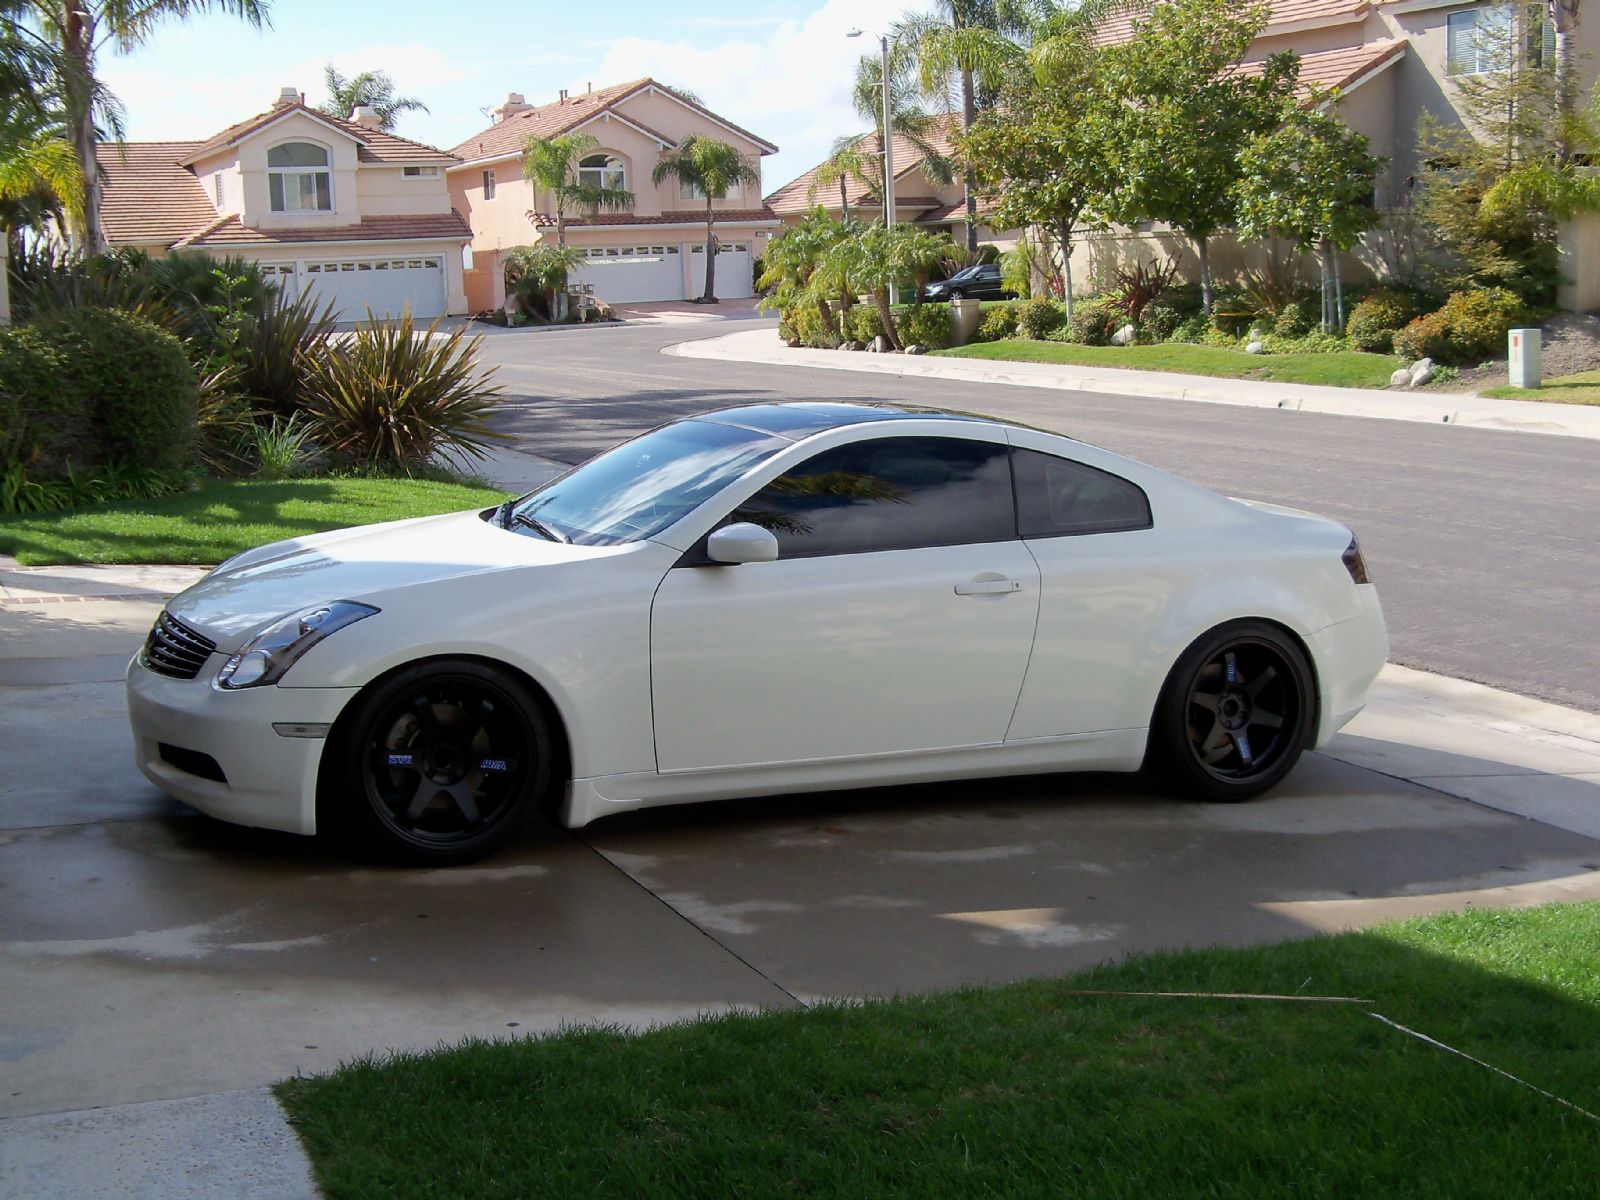 small resolution of infinity g35 image custome 2005 infiniti g35 for sale lake forest california